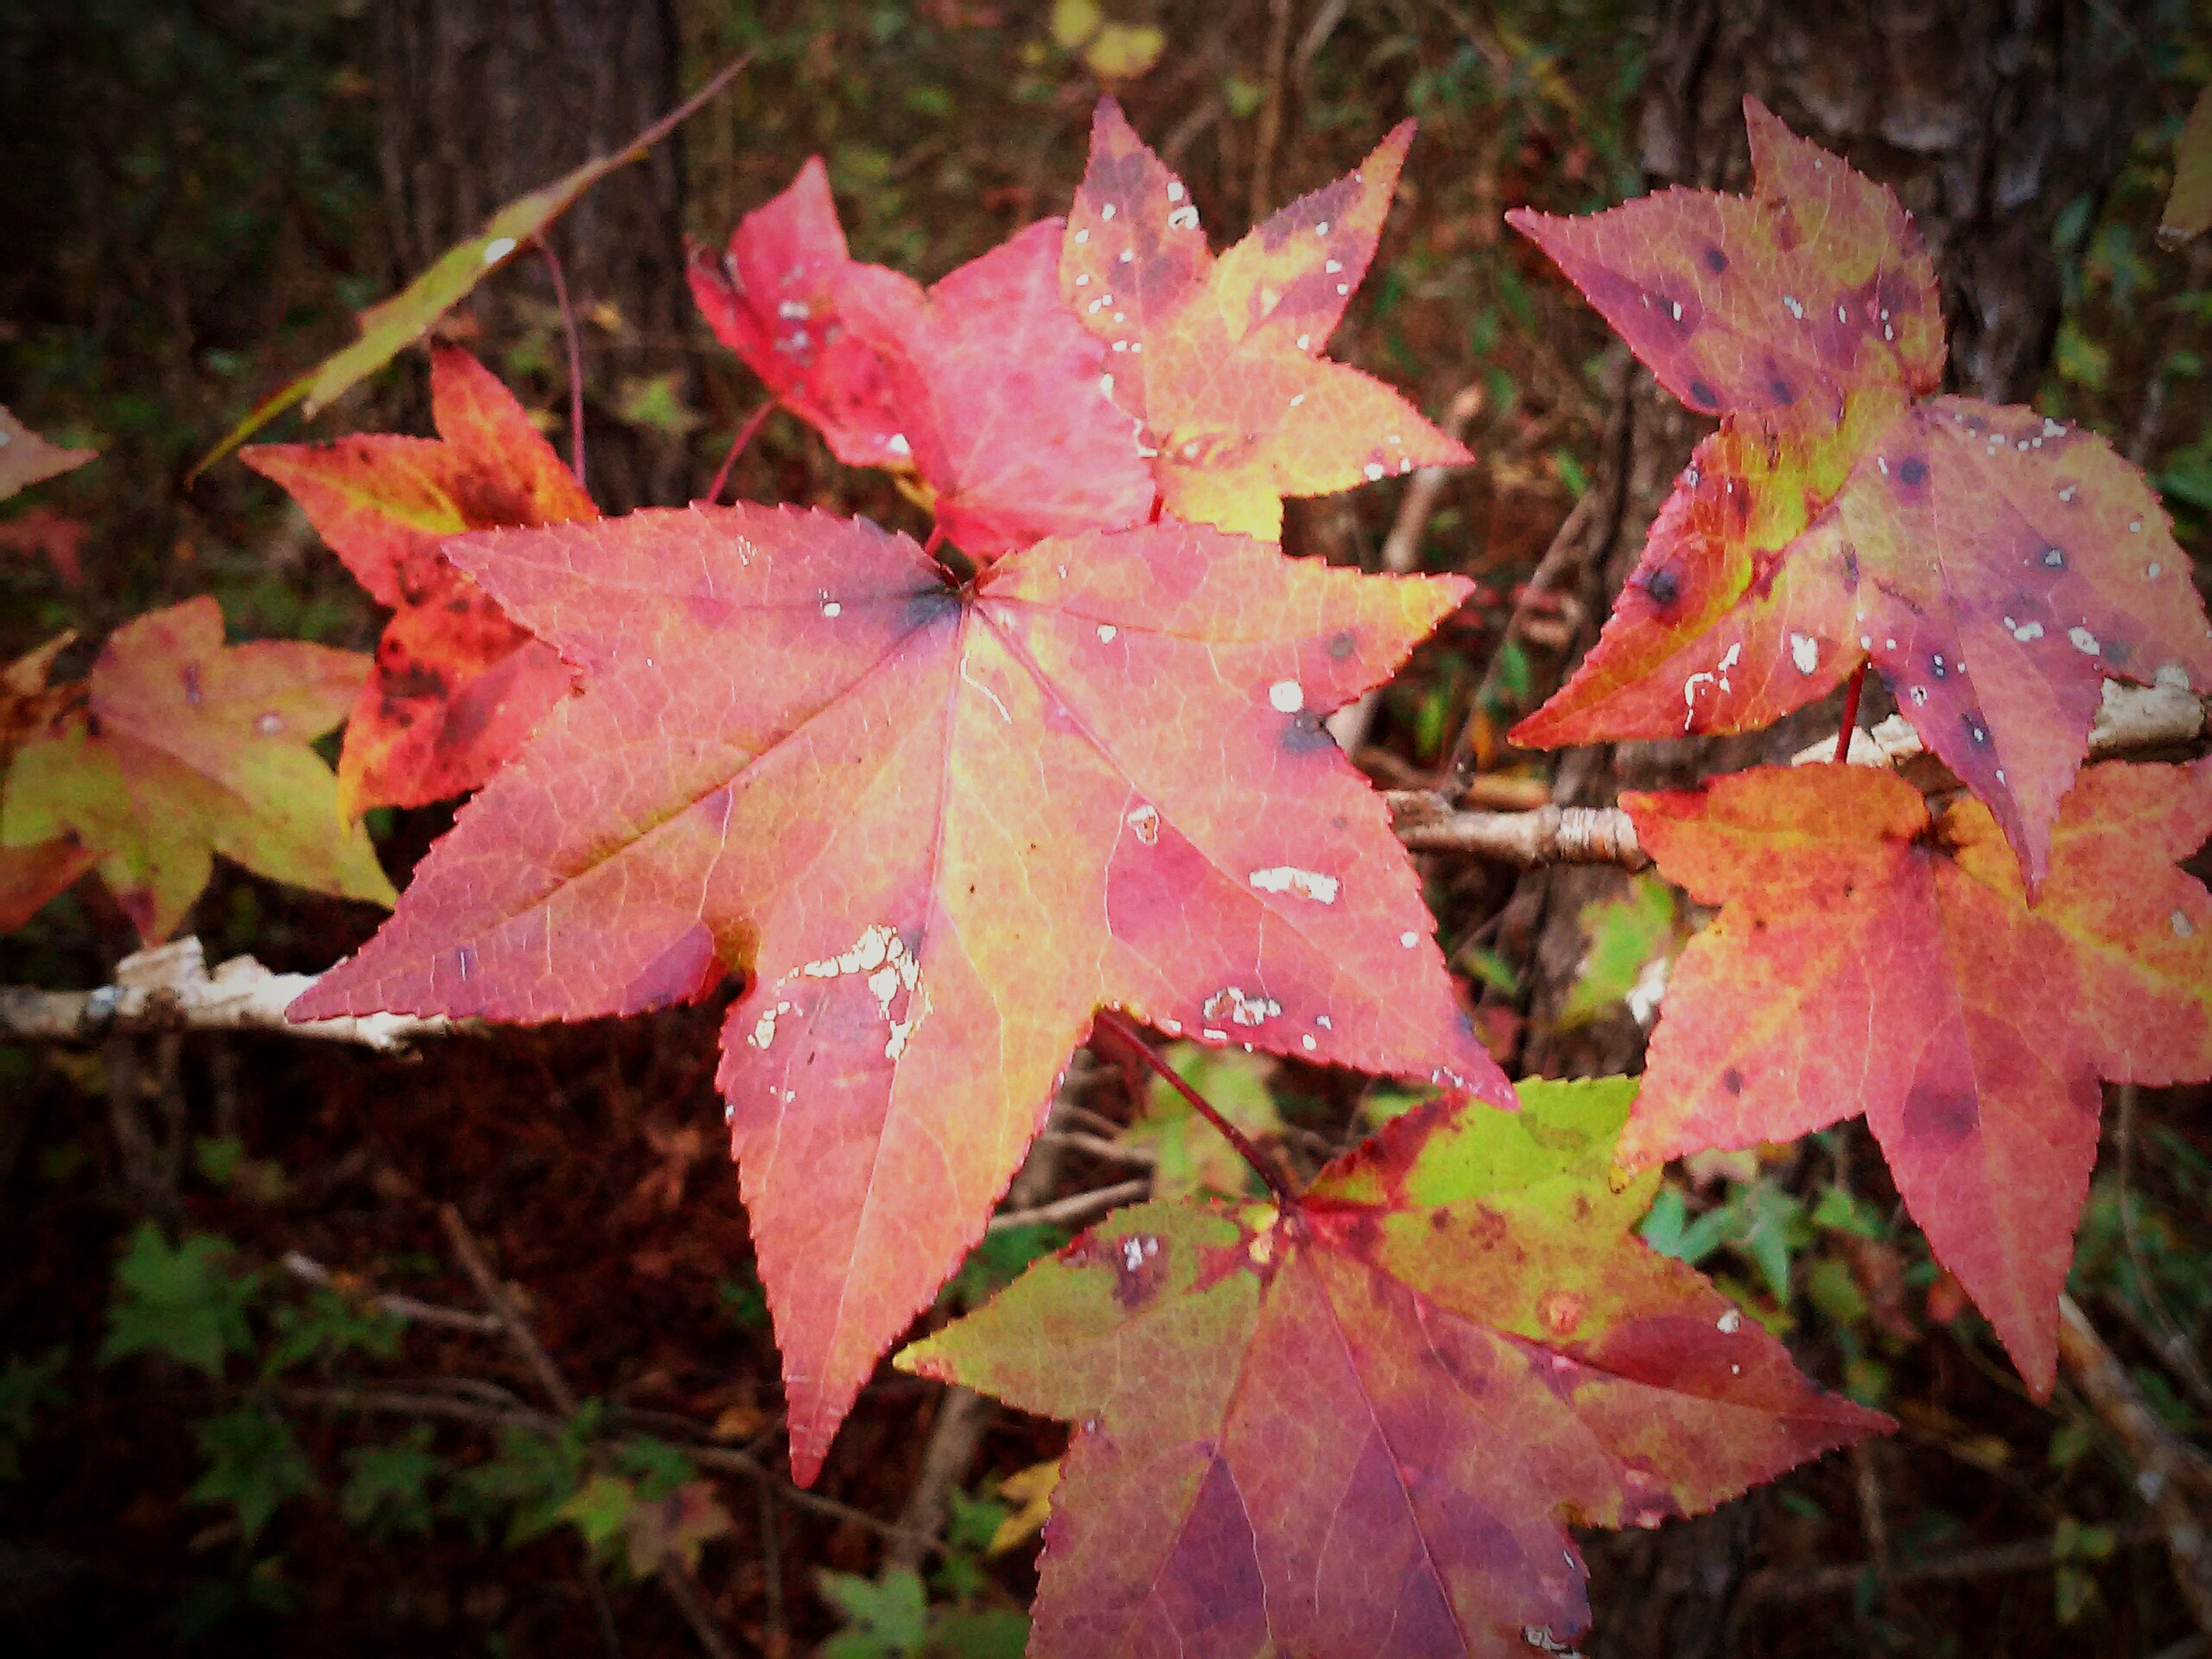 leaf, autumn, season, change, drop, wet, water, leaves, close-up, leaf vein, nature, beauty in nature, rain, maple leaf, red, fragility, weather, raindrop, focus on foreground, growth